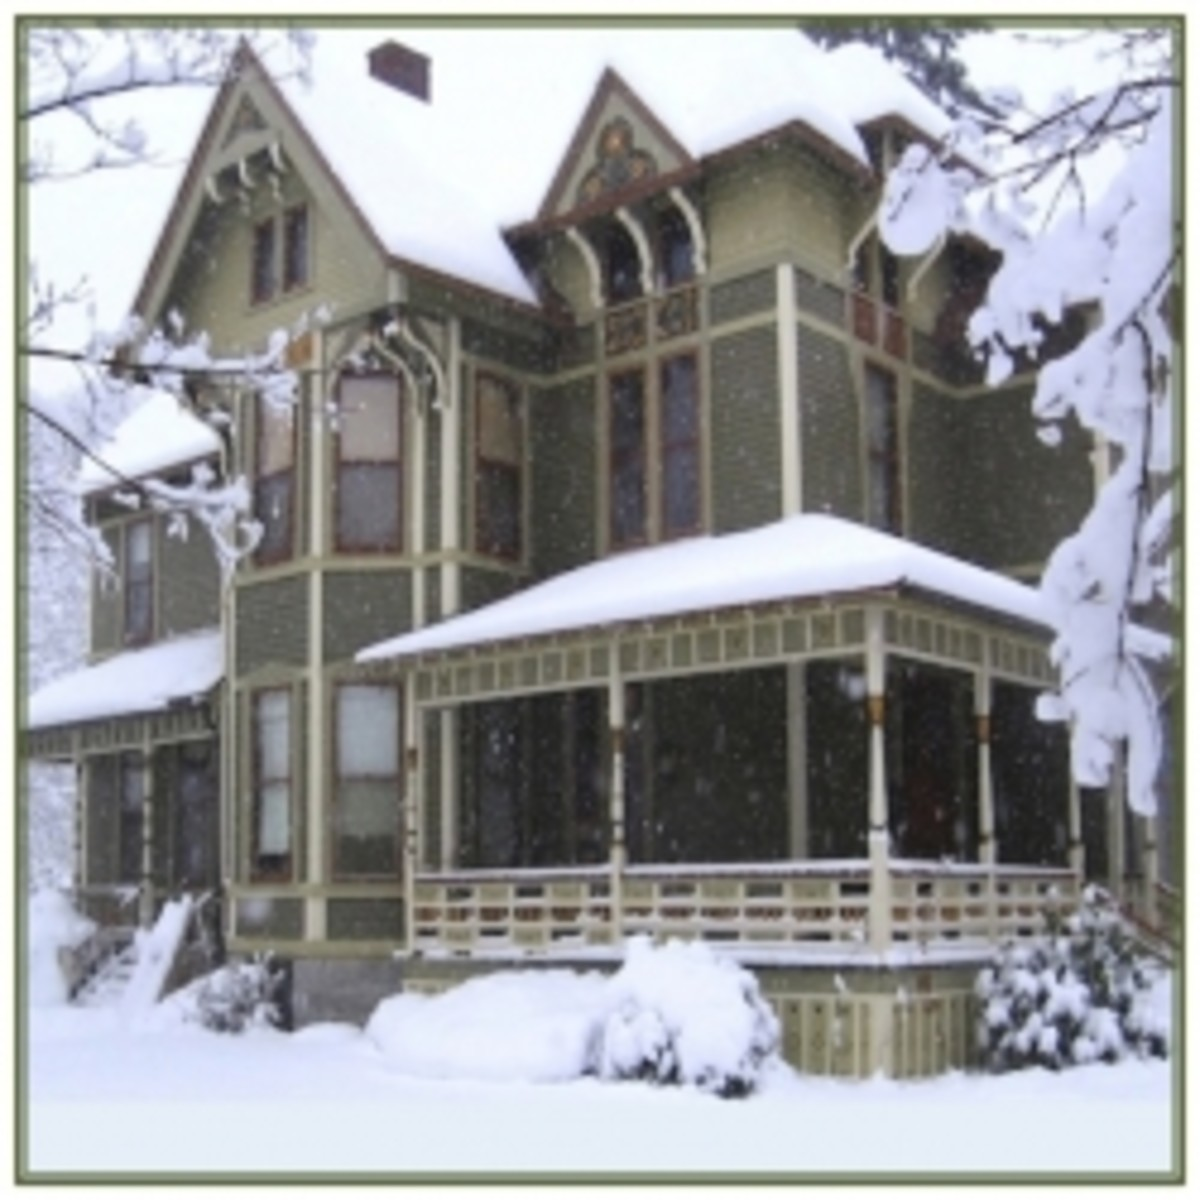 Energy Efficient Winter Decorating Victorian Style